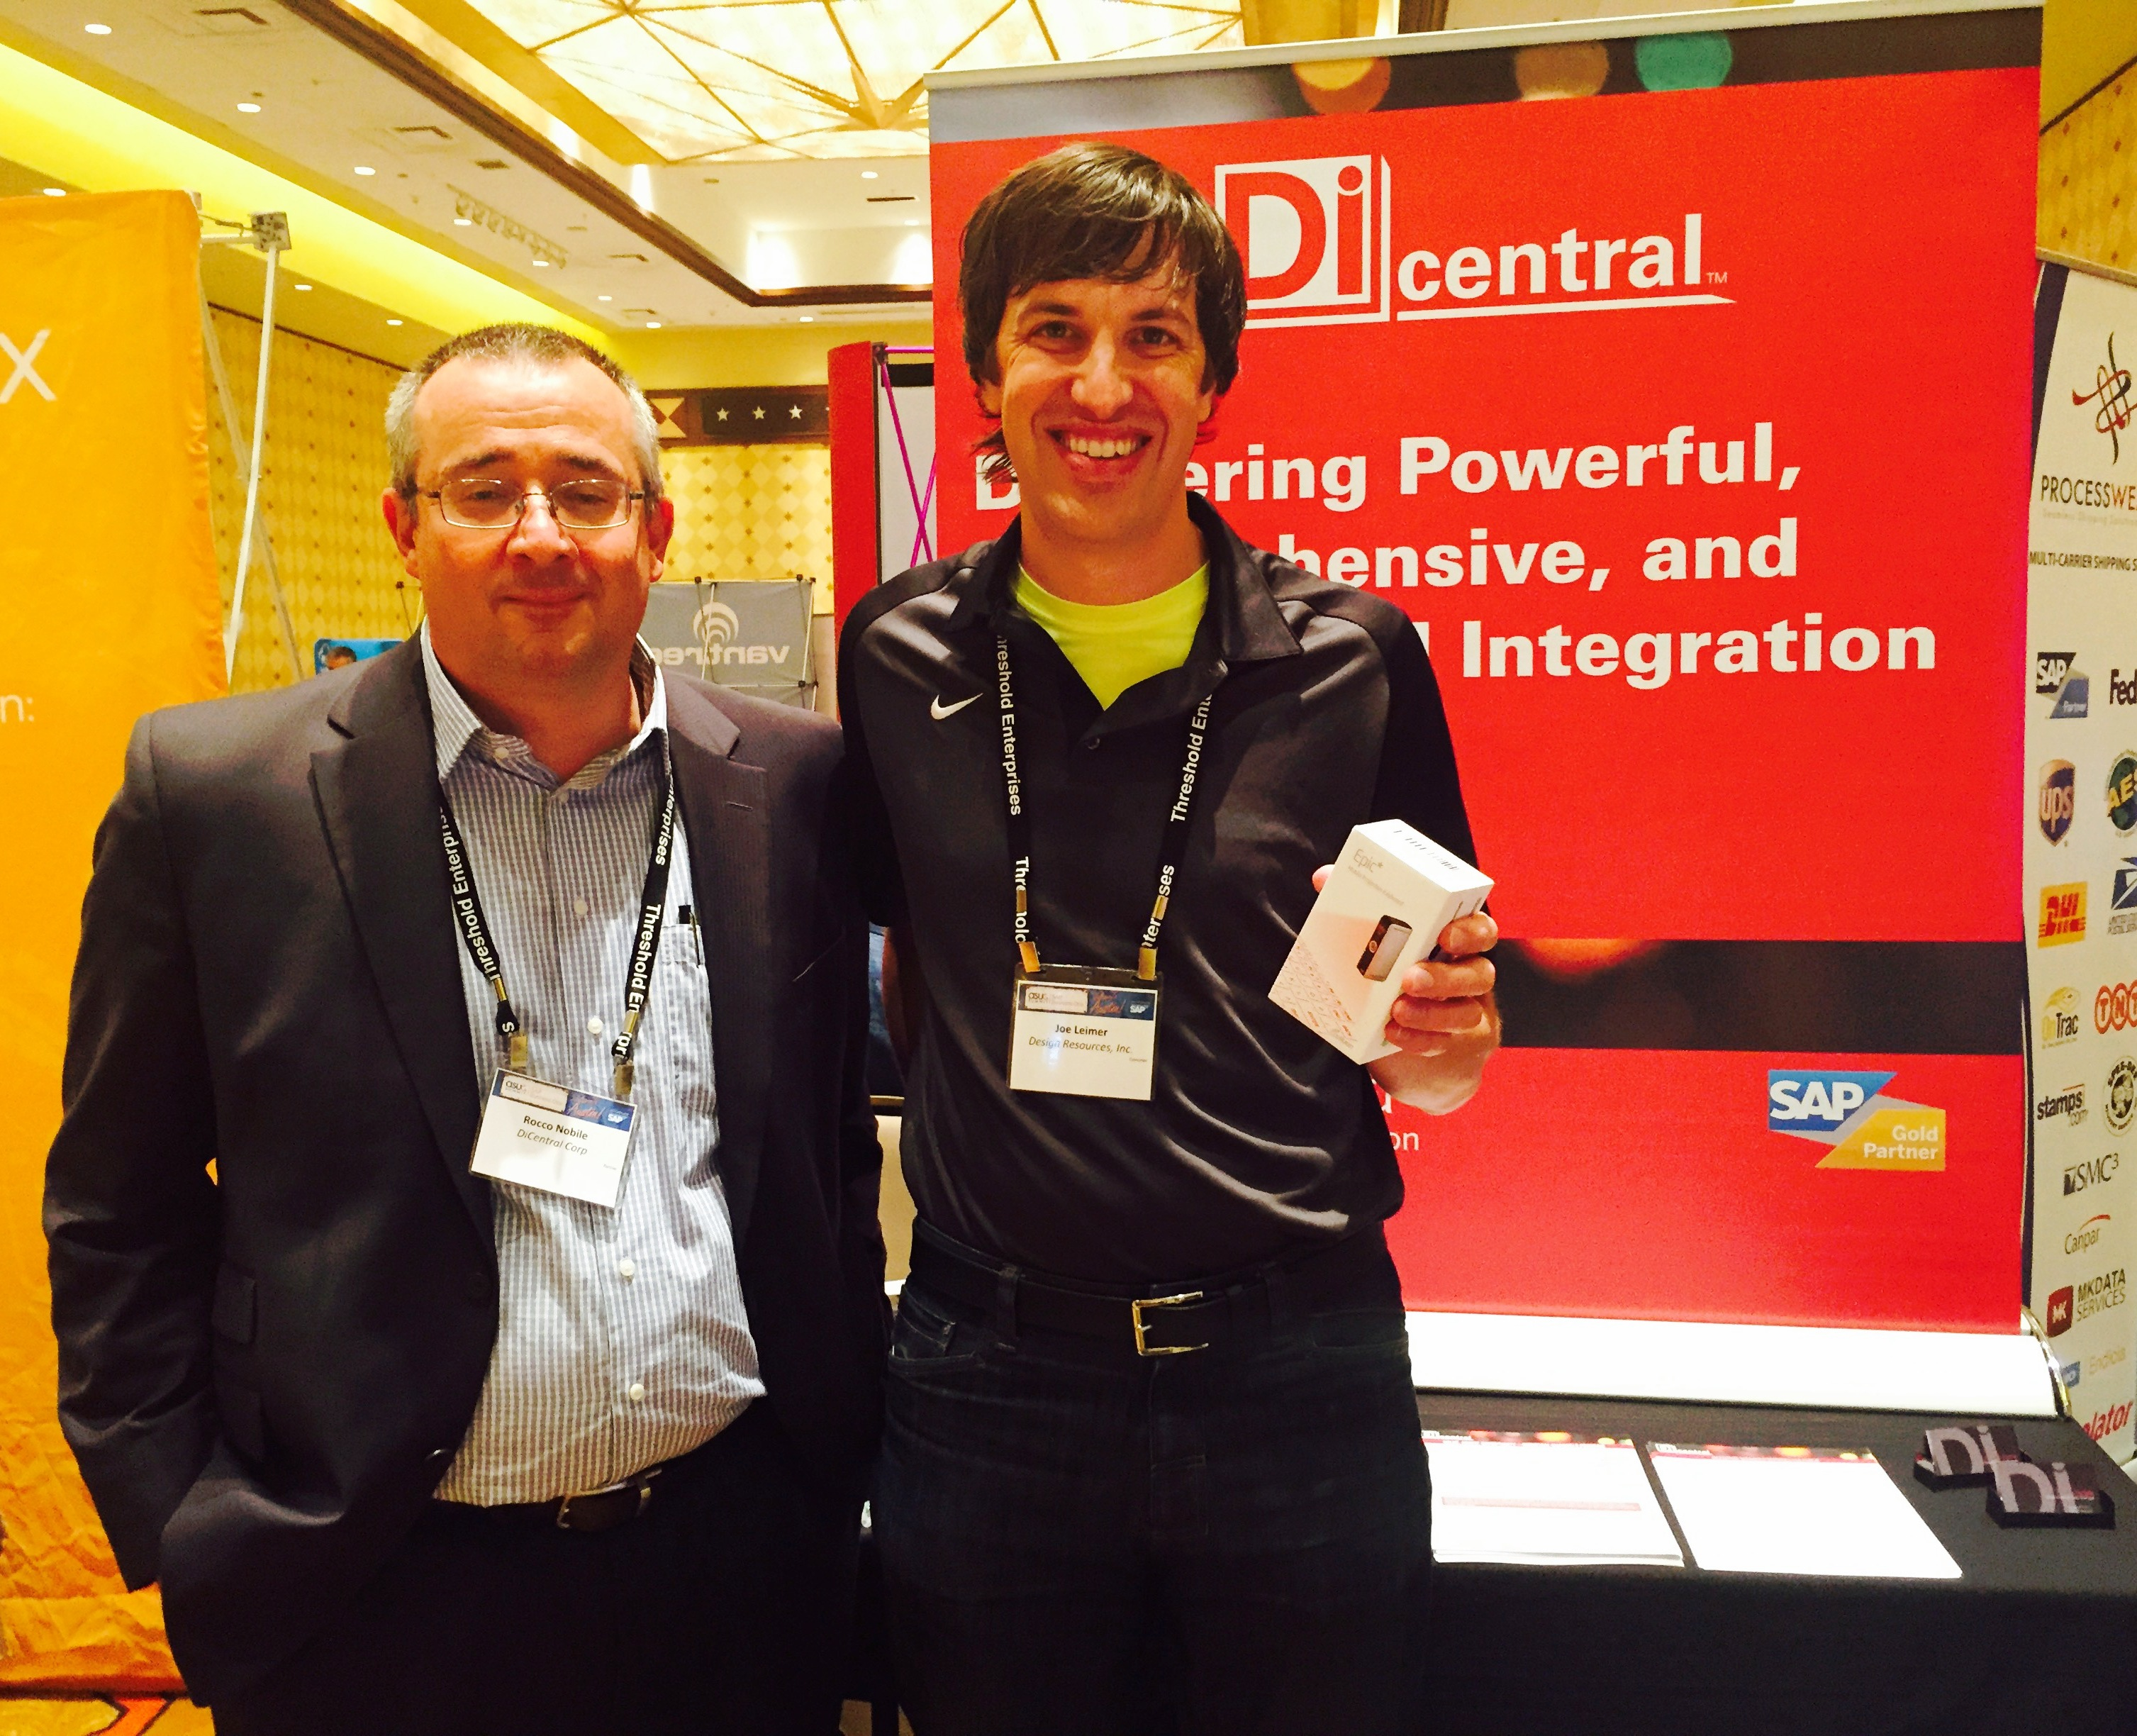 Congrats to the Winner of the DiCentral Prize Giveaway at ASUG SAP Business One Summit